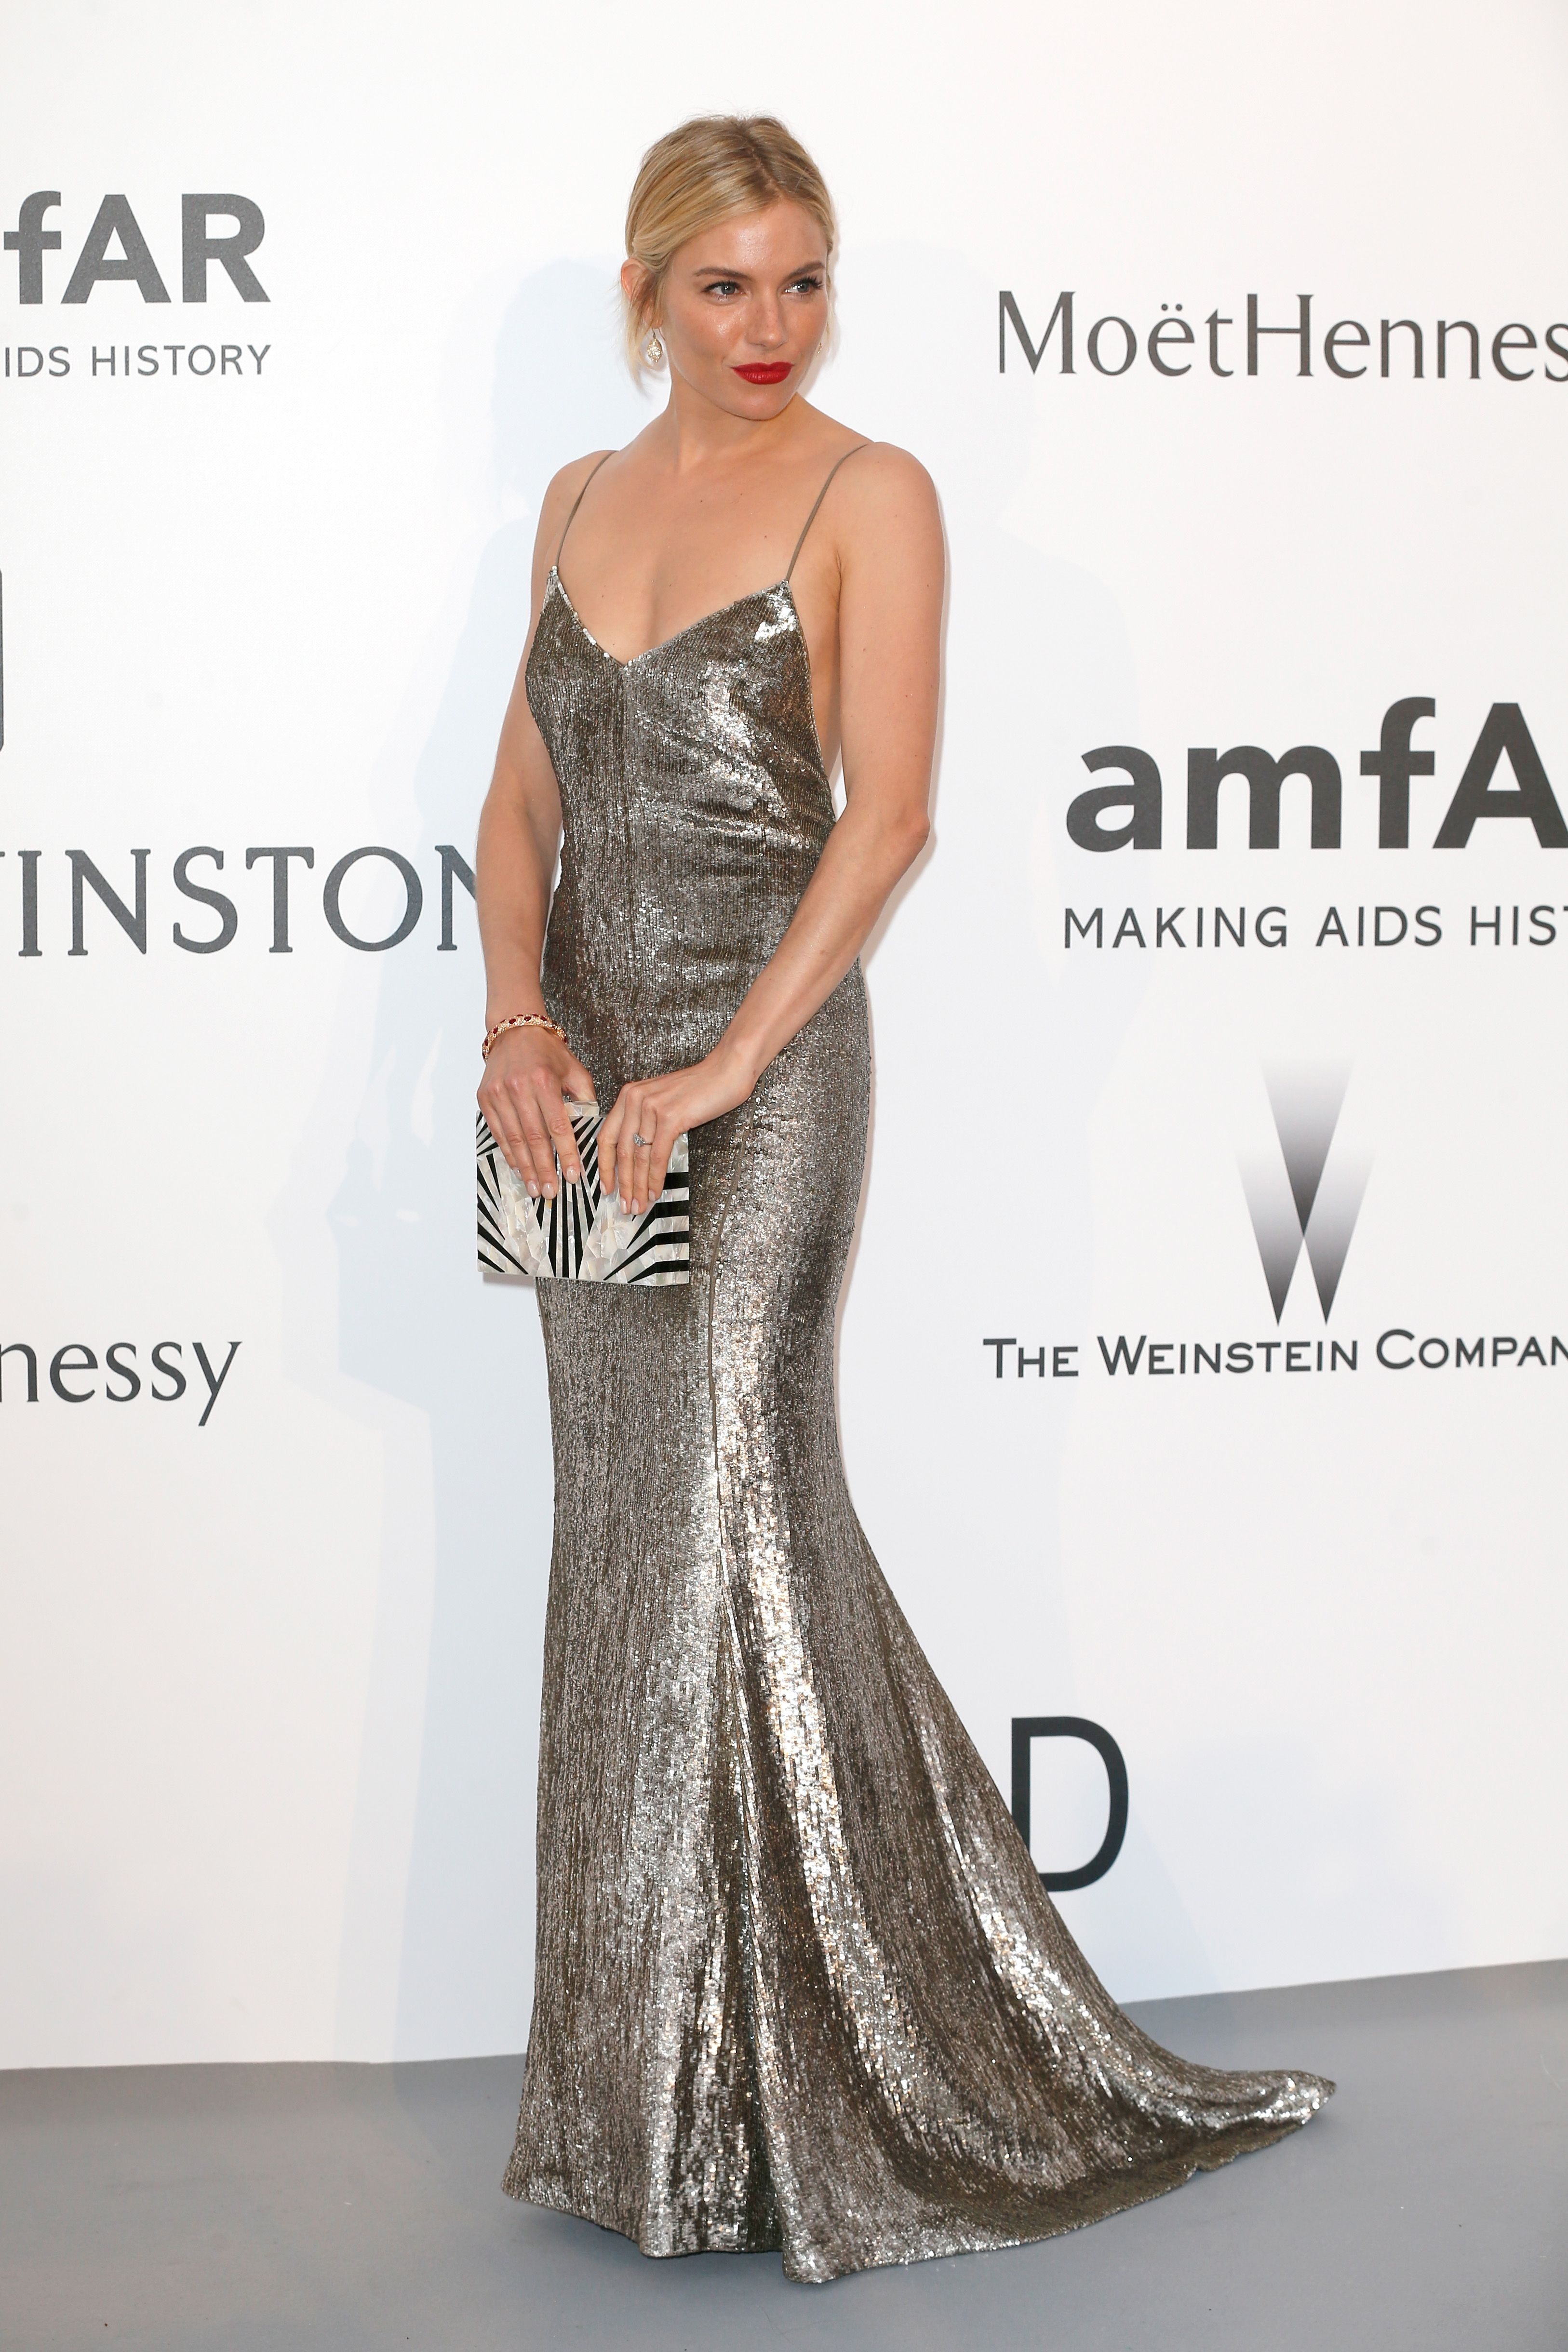 See Every Gorgeous Red Carpet Look at the Cannes amfAR Gala - ELLE.com 0fb525c09ad4